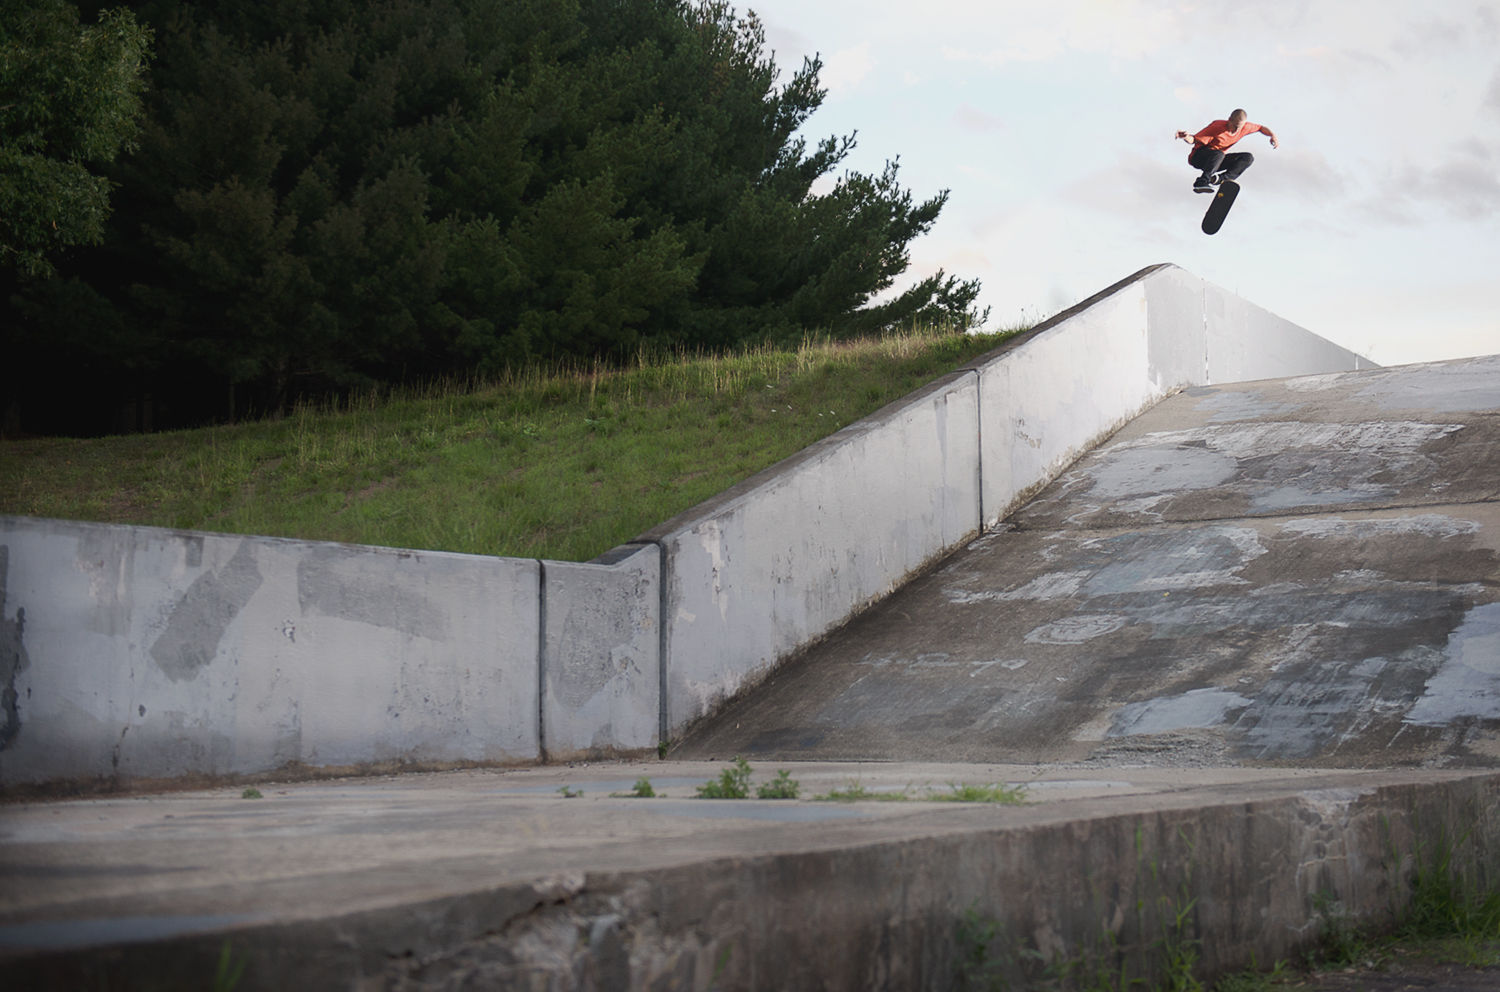 BRANDON WESTGATE / 360 KF / CT